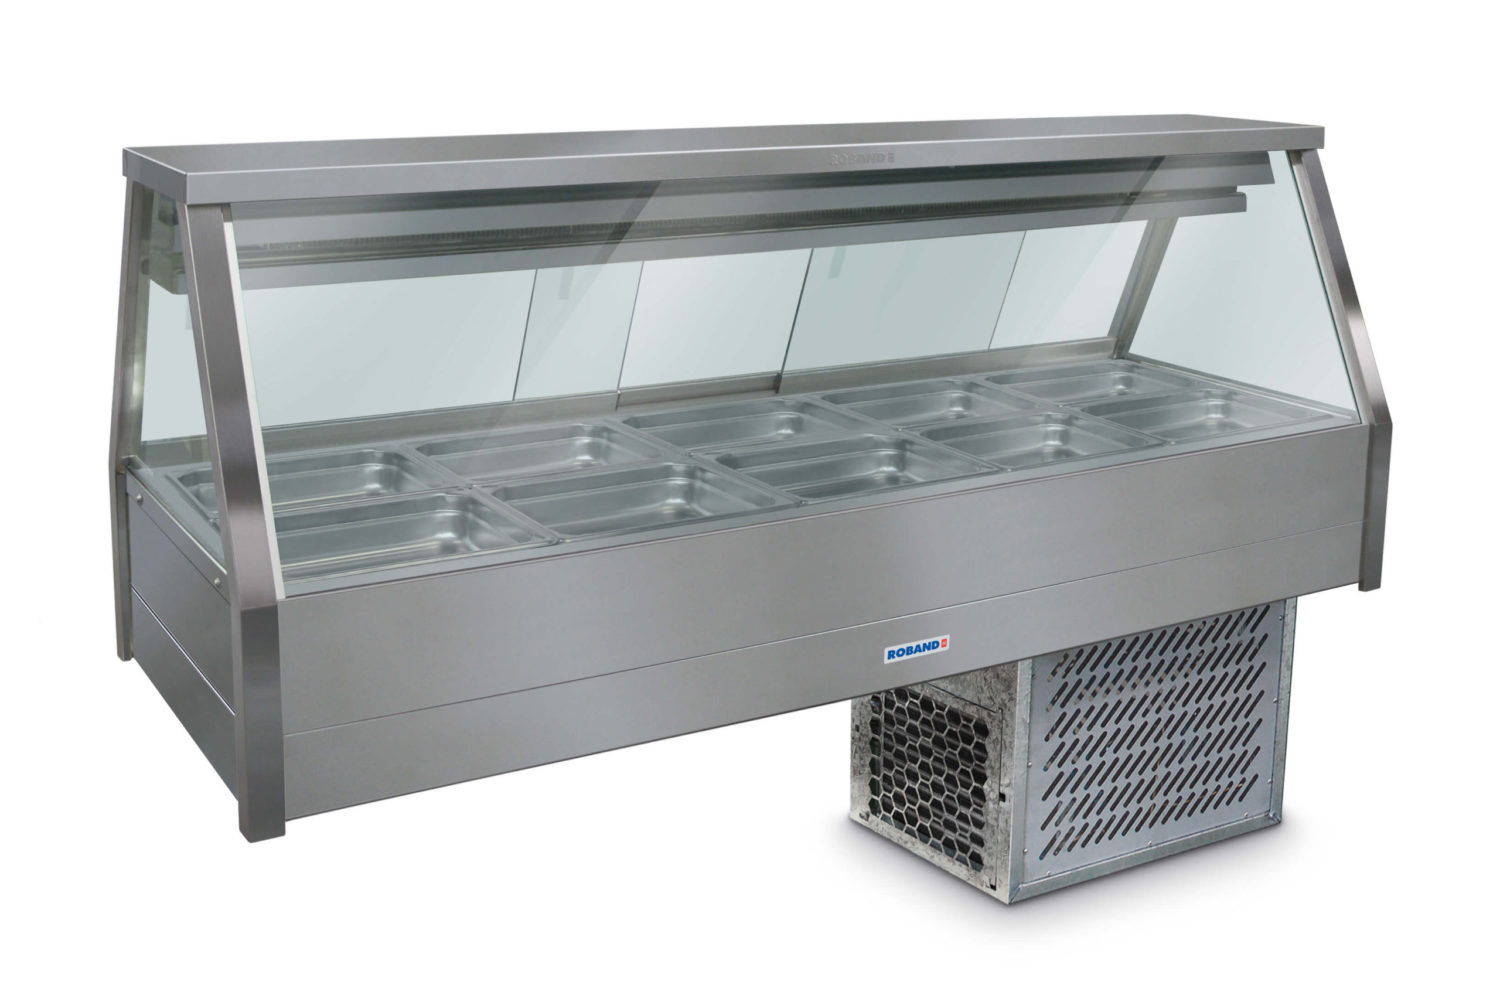 Roband Straight Glass Refrigerated Display Bar – Piped and Foamed only (no motor), 10 pans